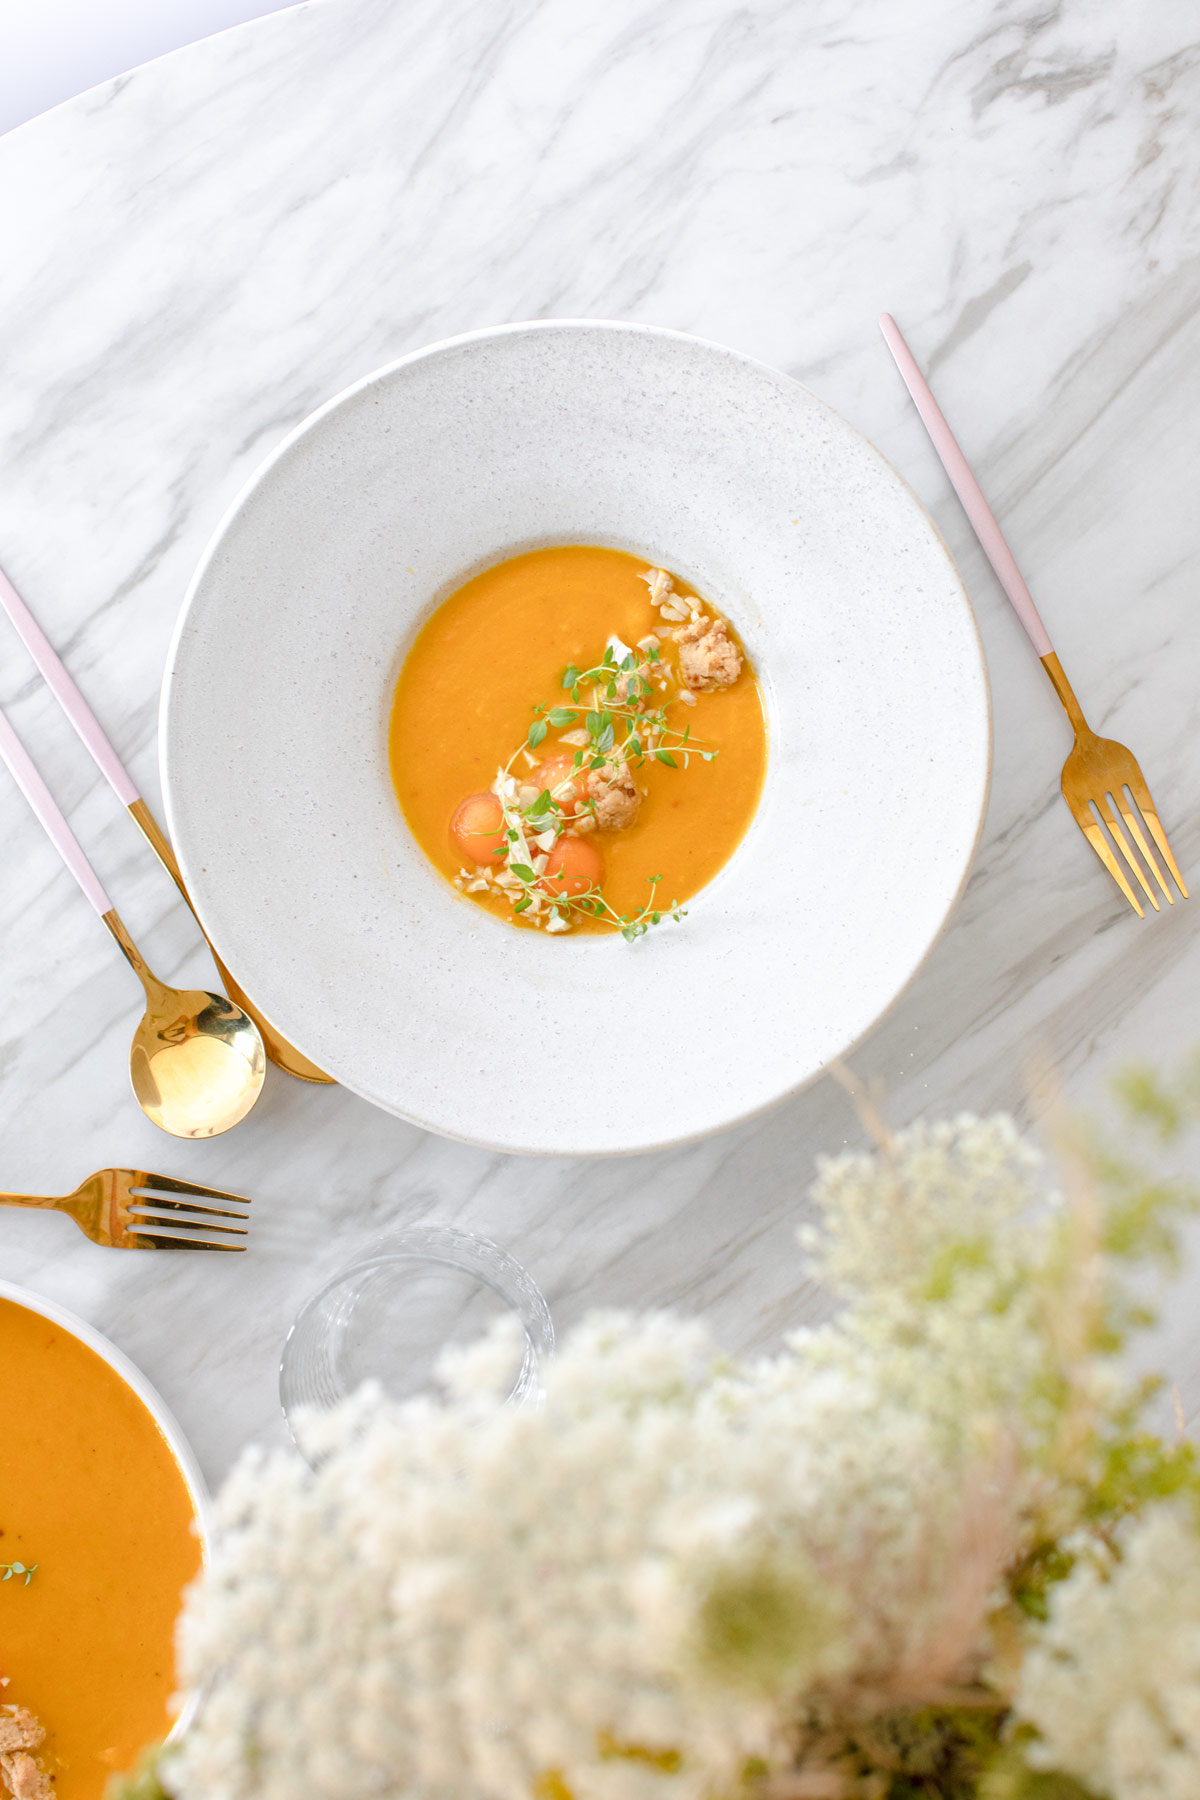 Spicy Cantaloupe Melon-Carrot Soup with Crunchy Umami Crumble